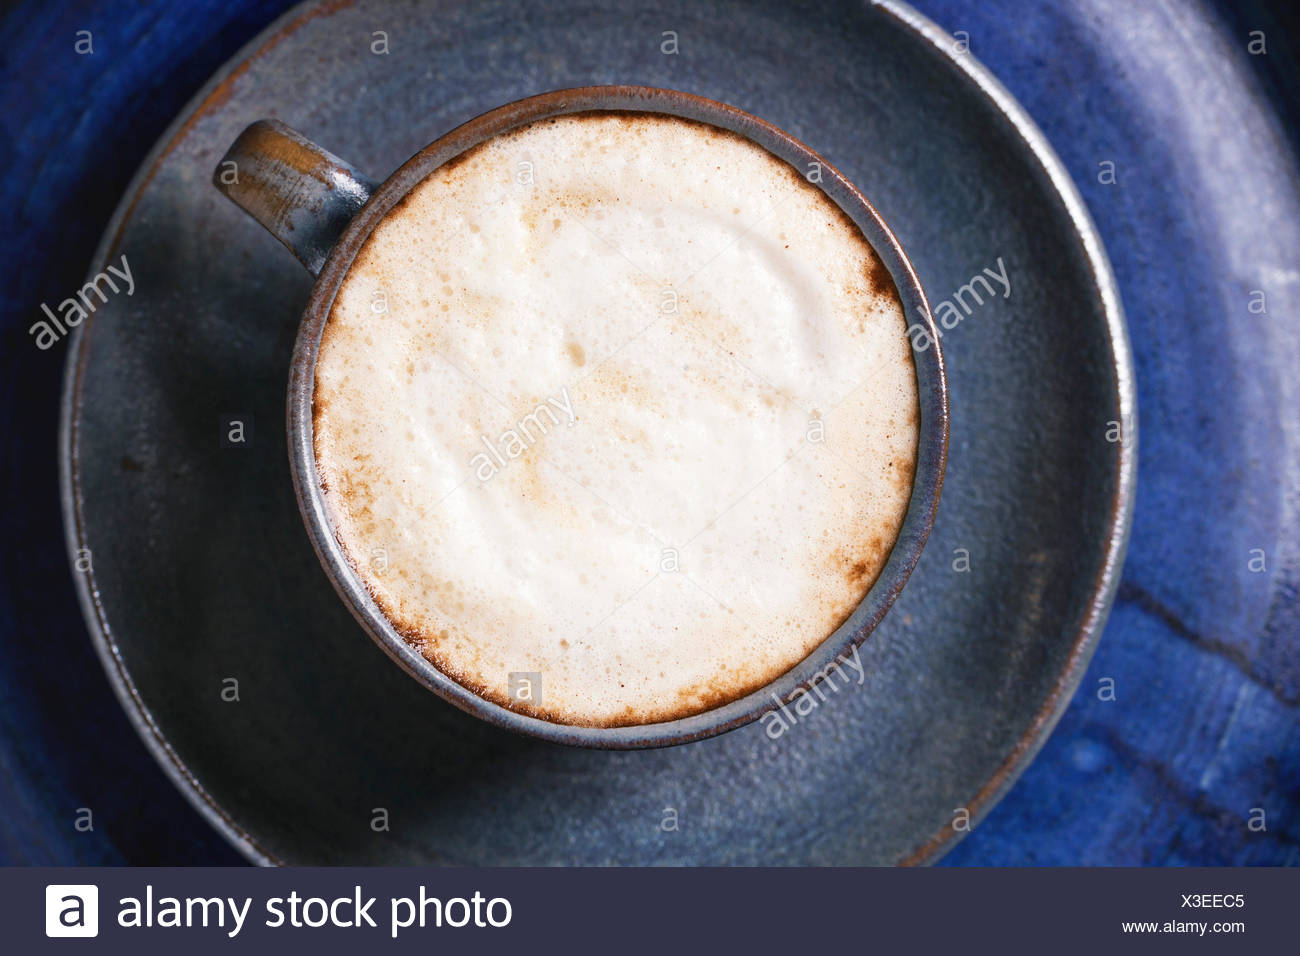 Blue ceramic cup of cappuccino over blue ceramic tray. Top view. - Stock Image